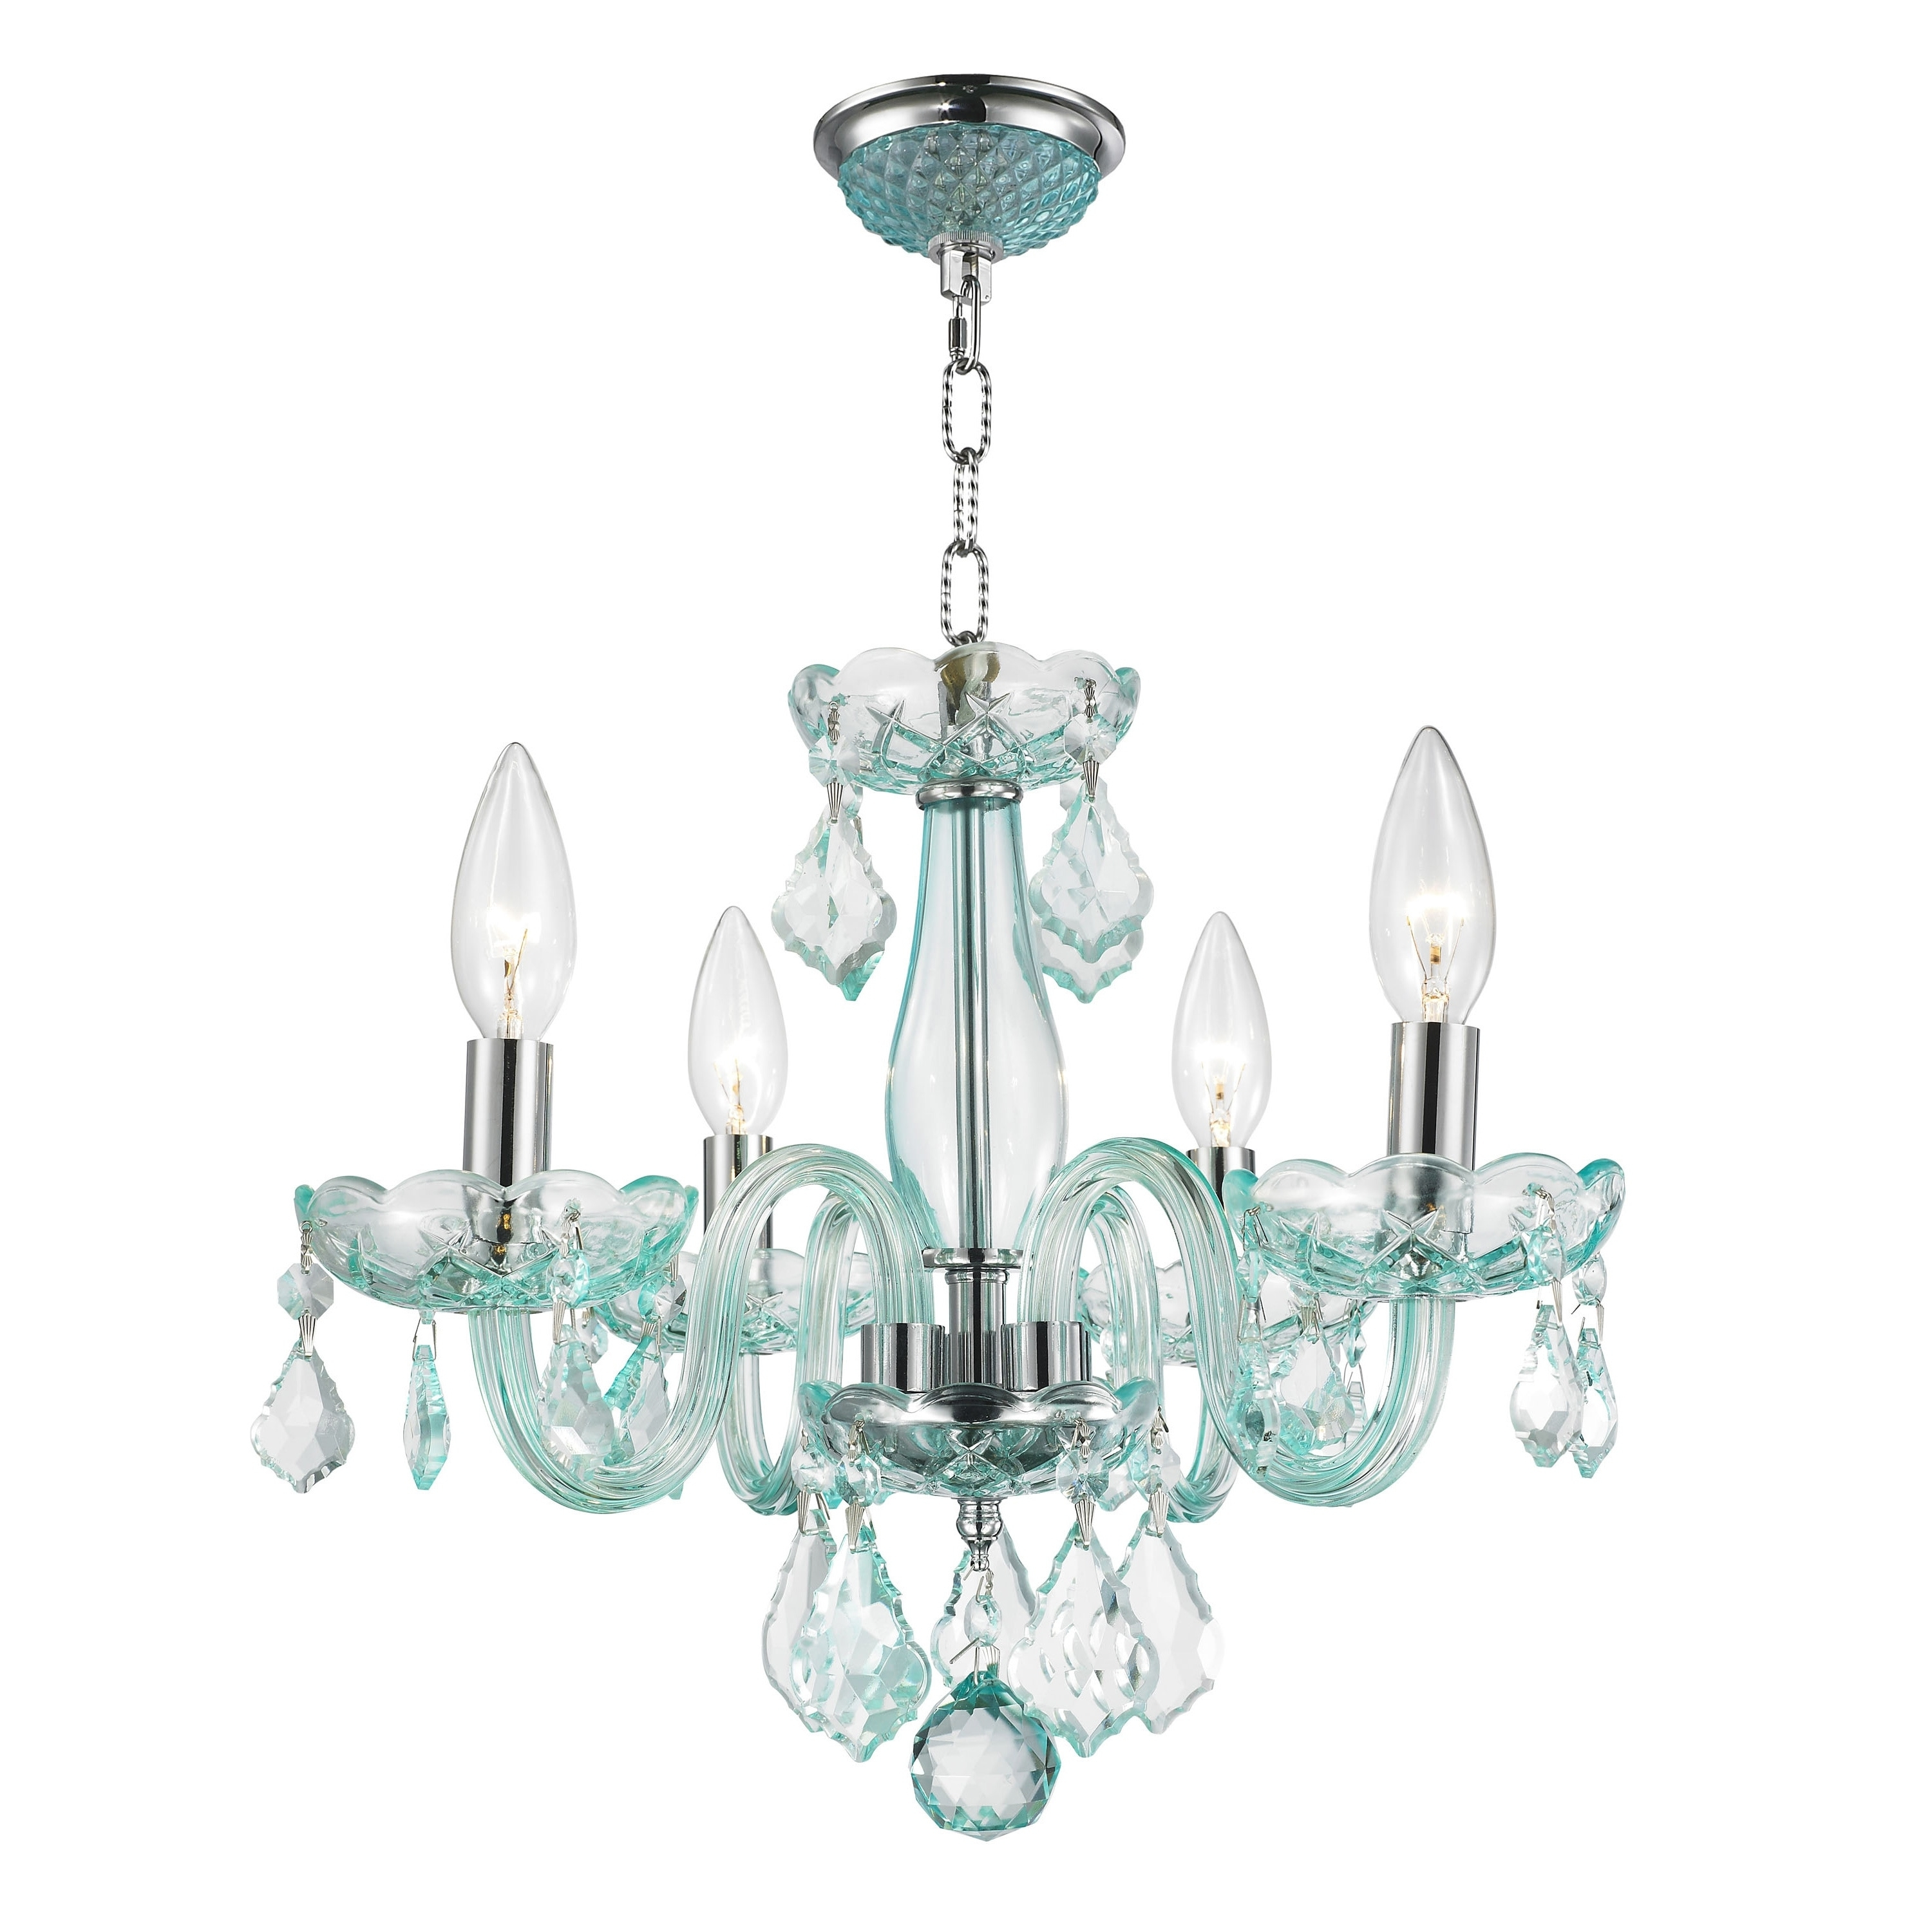 Turquoise Crystal Chandelier Lights For Fashionable Kids Room Glamorous 4 Light Full Lead Turquoise Blue Crystal (View 2 of 15)